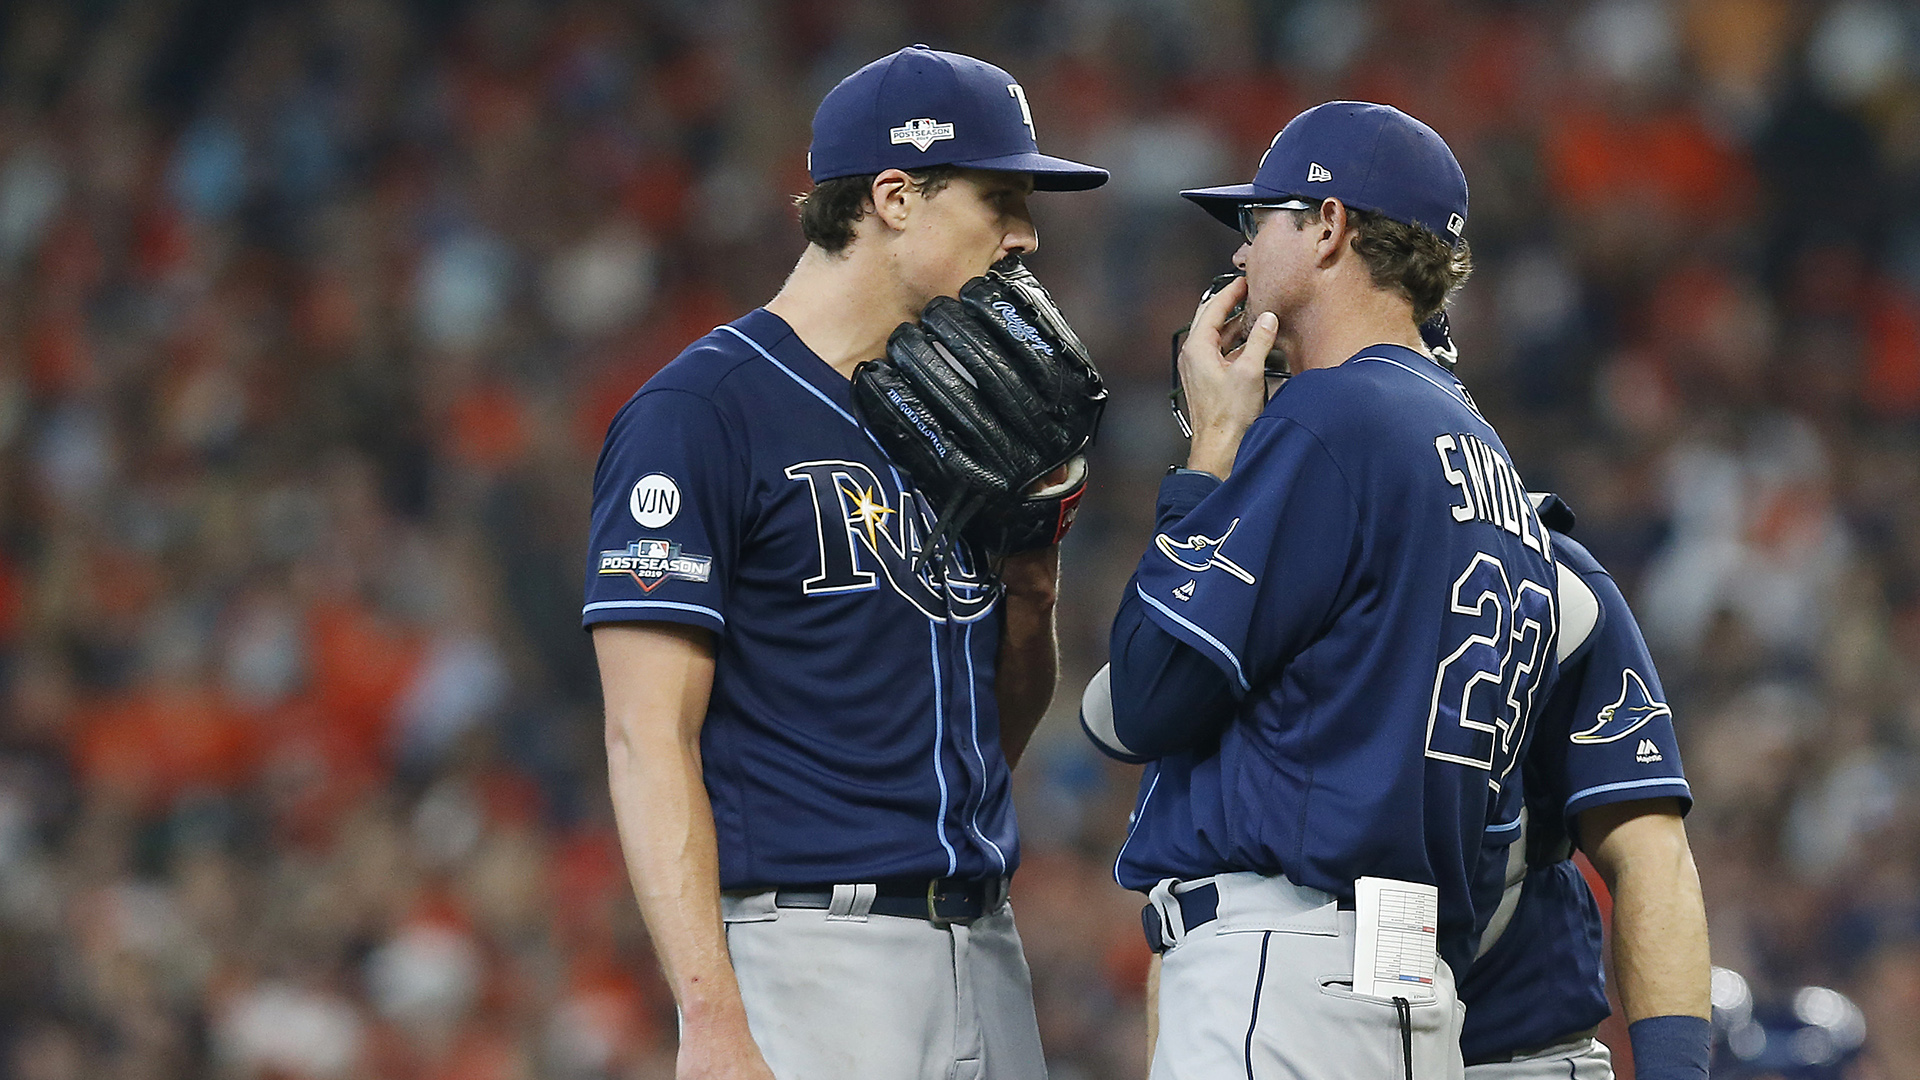 Former pitcher suggests Rays believe Astros are using camera to steal signs in ALDS Game 5